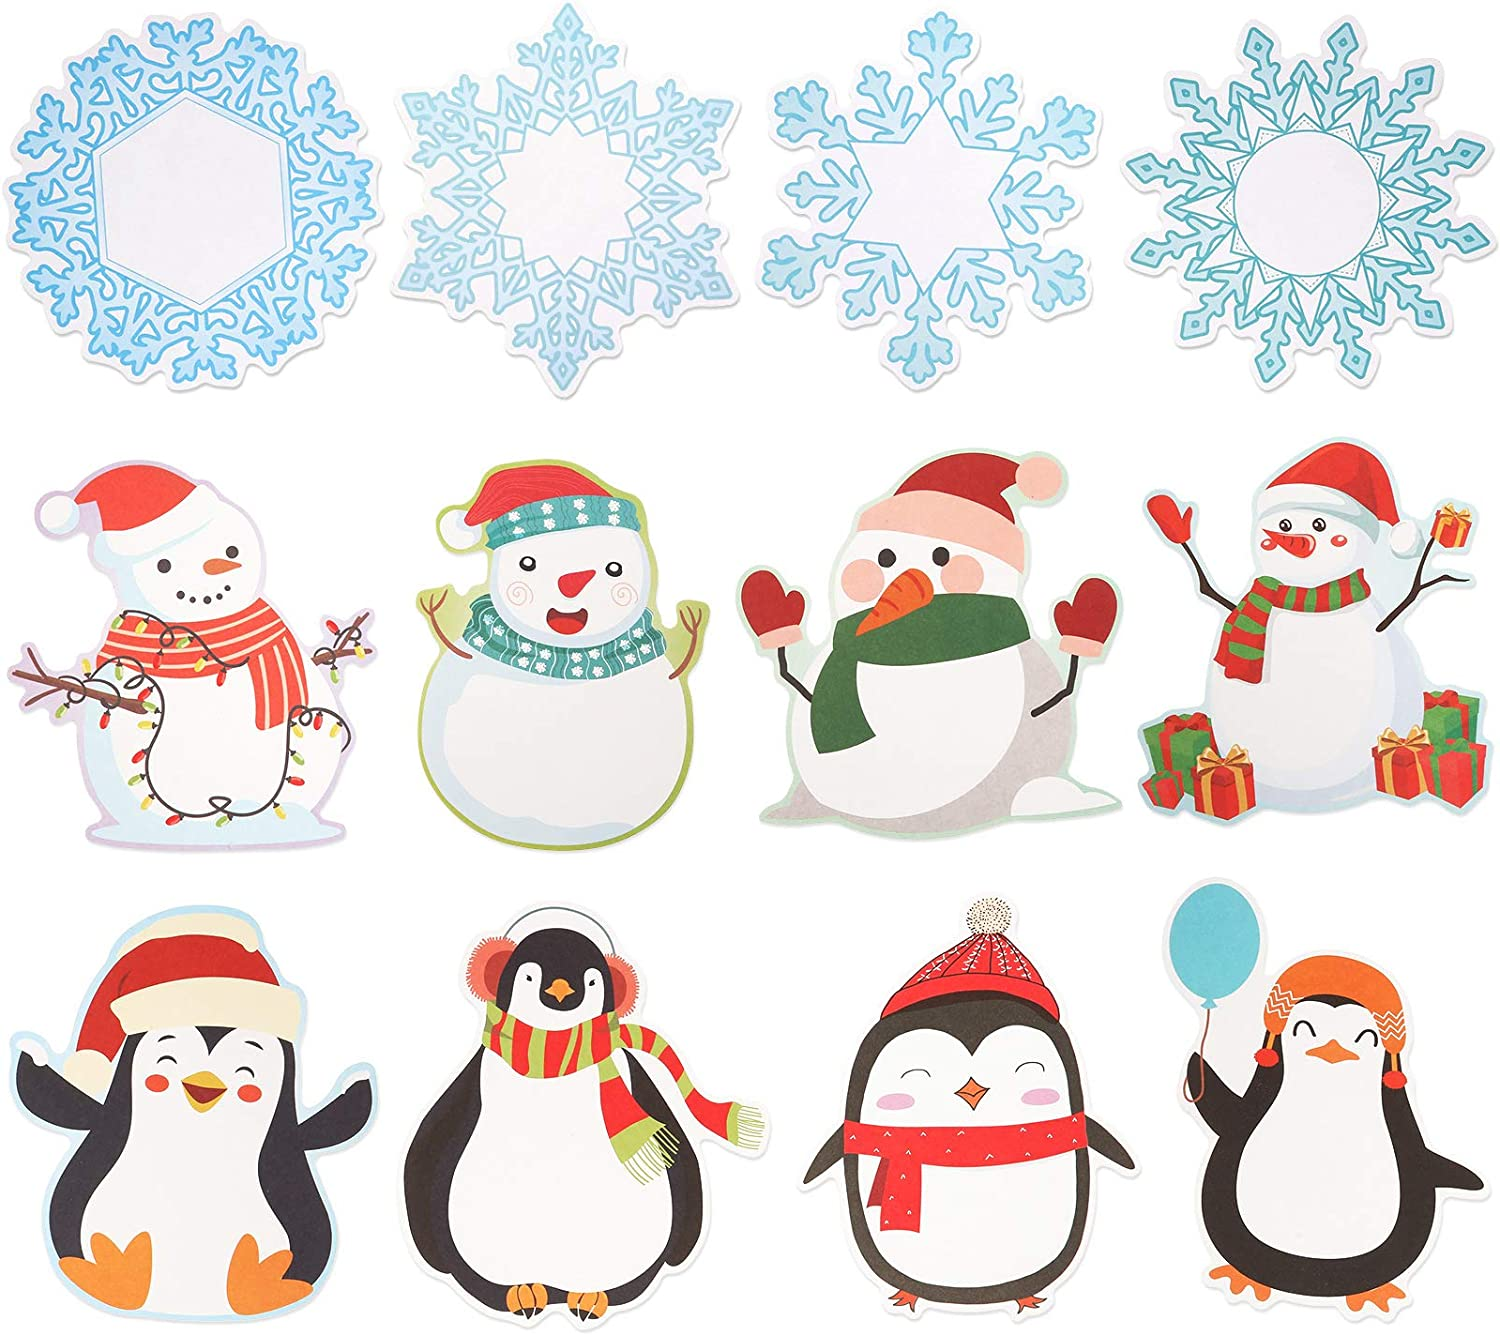 72 Pieces Winter Colorful Mix Cut-Outs Snowflakes Snowman Penguin Cutouts Classroom Decoration for Craft Bulletin Board School Christmas Party